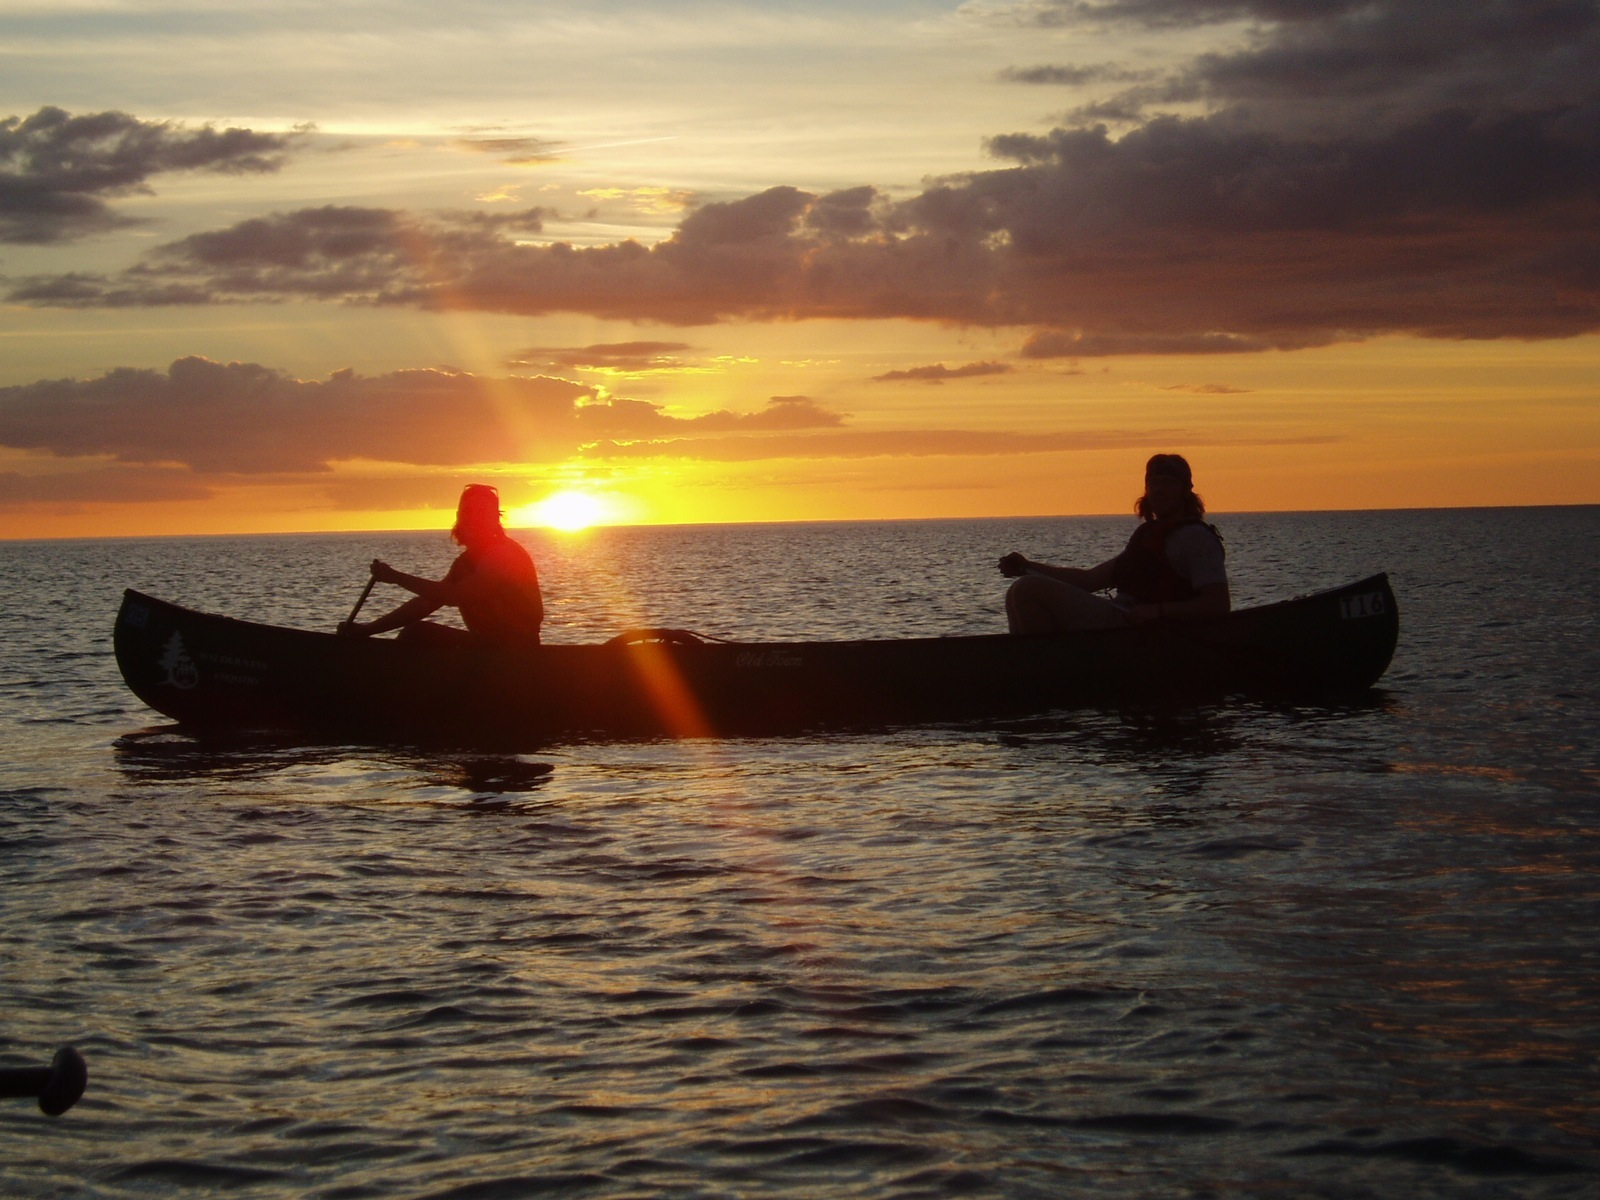 Two canoeists in a tandem canoe are silhouetted by the setting sun while paddling in the Gulf of Mexico.